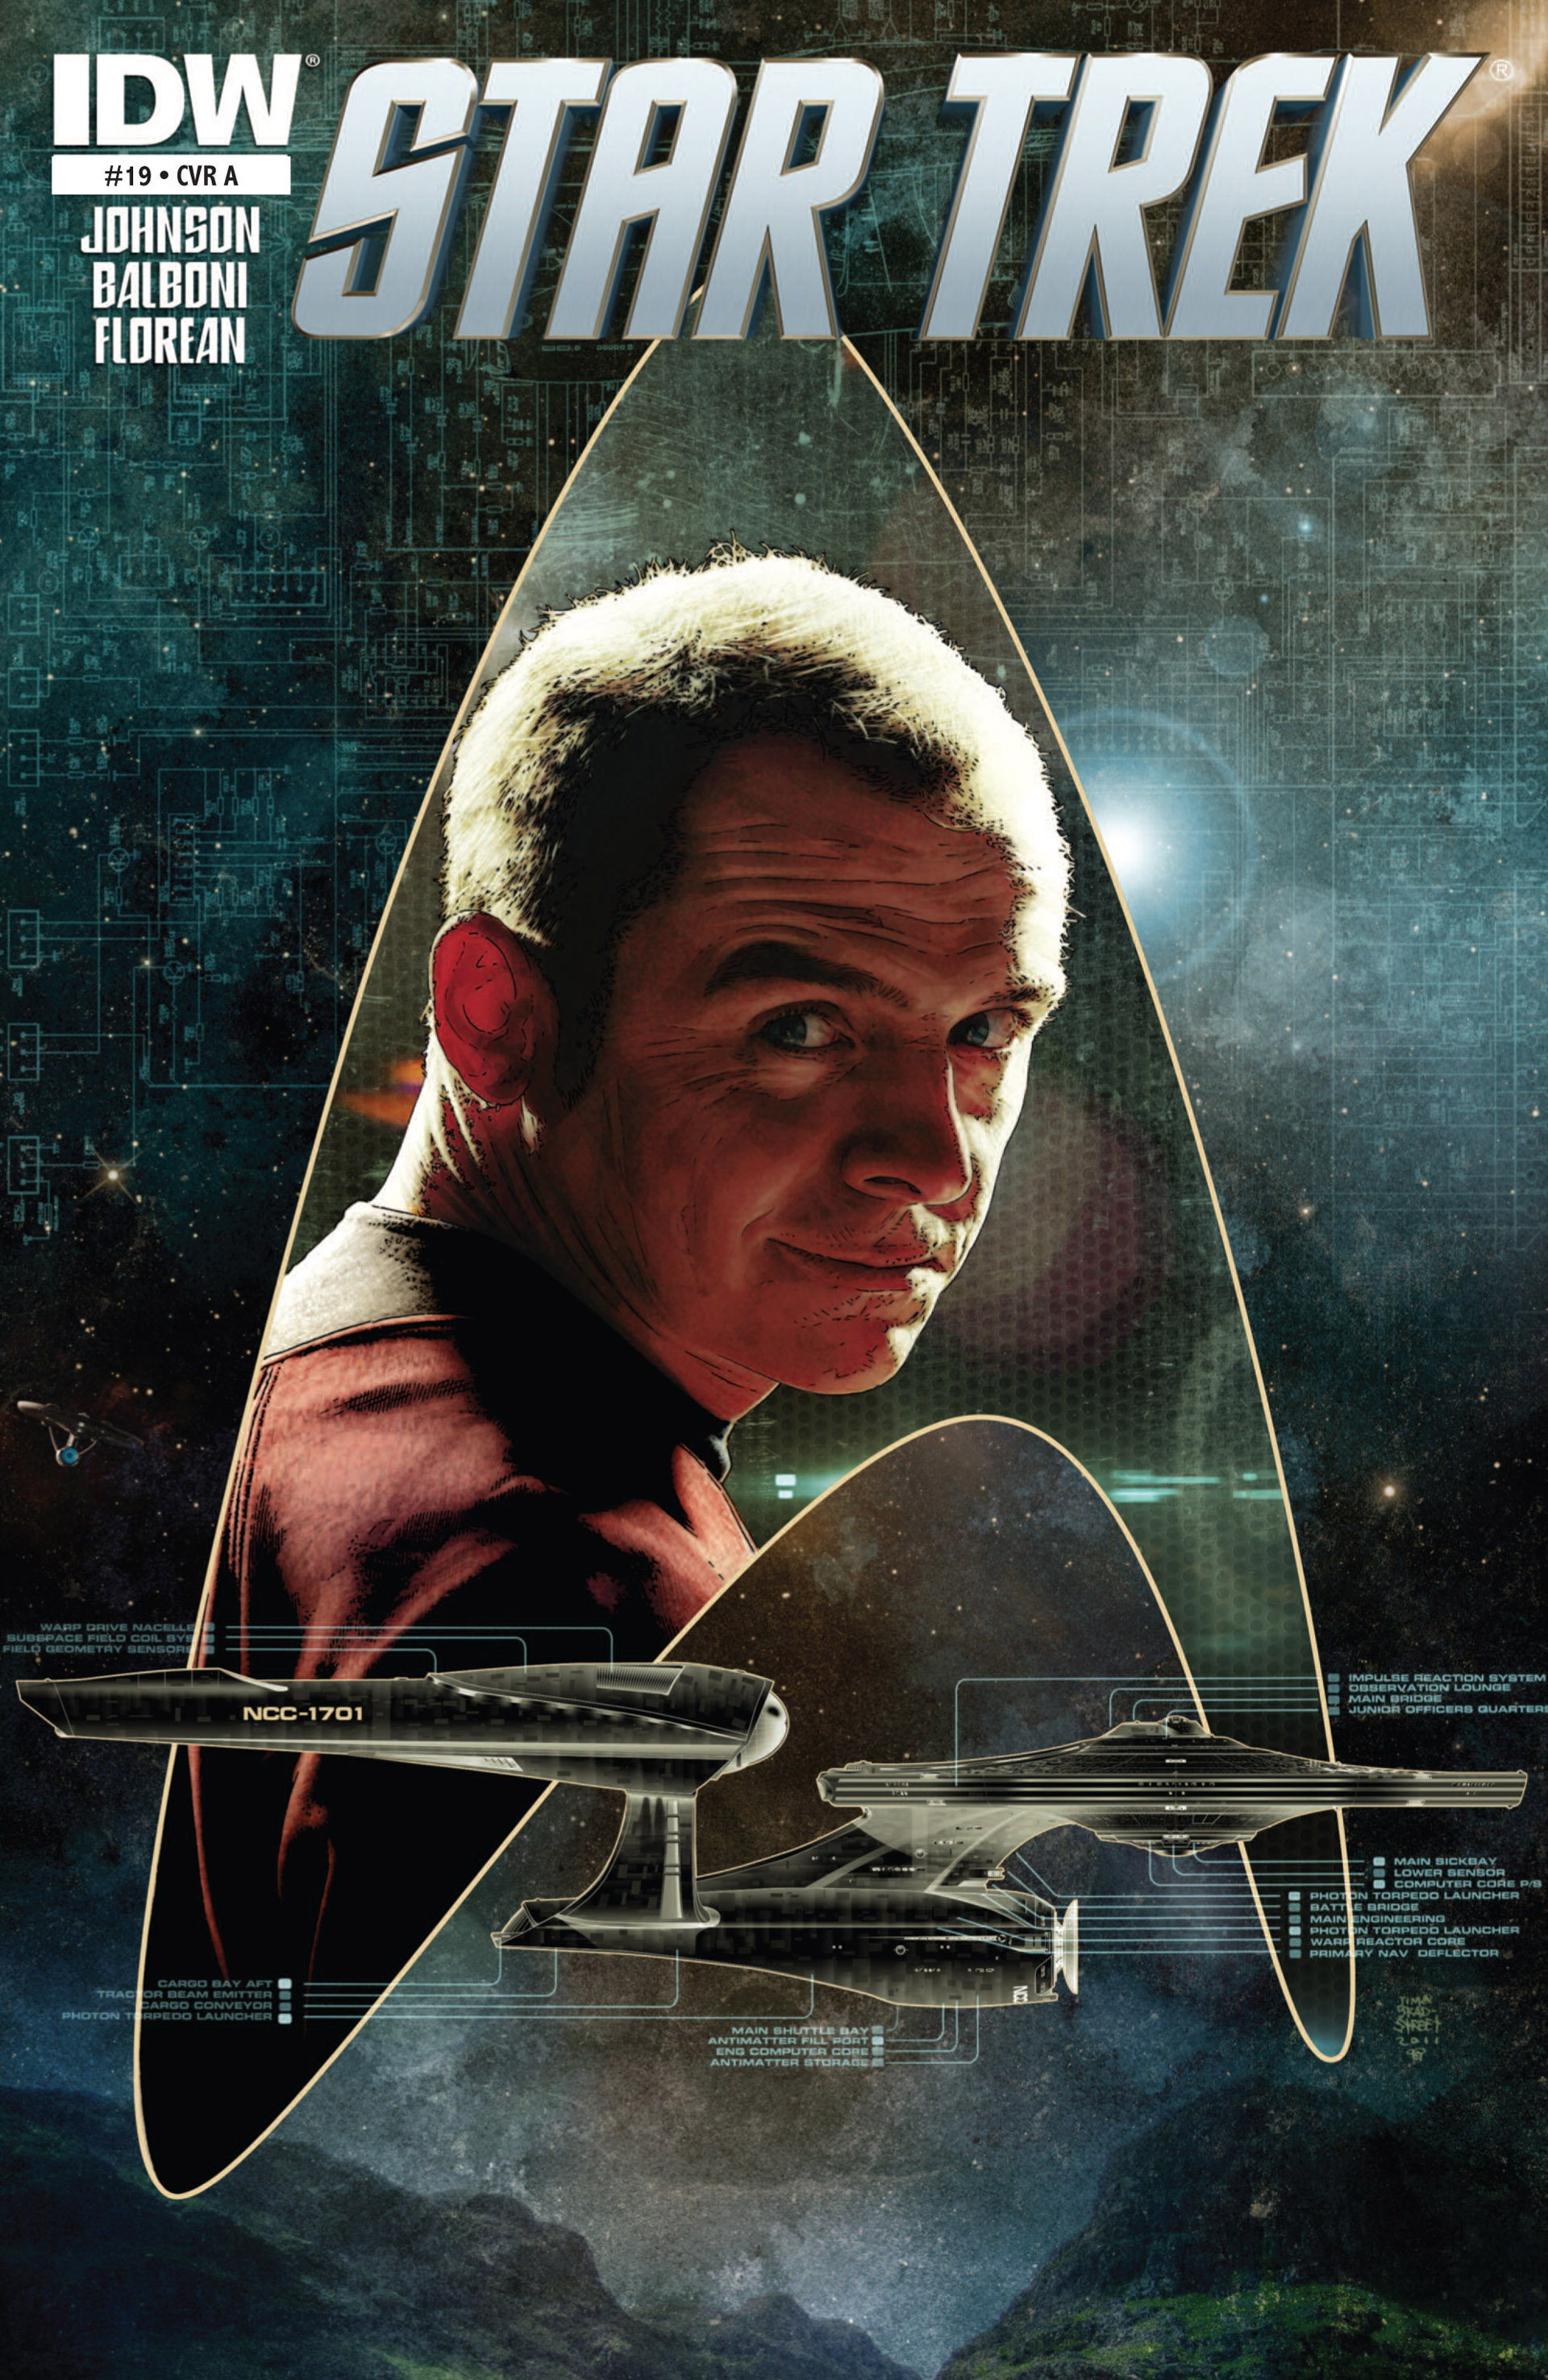 File:IDW Star Trek 19.jpg